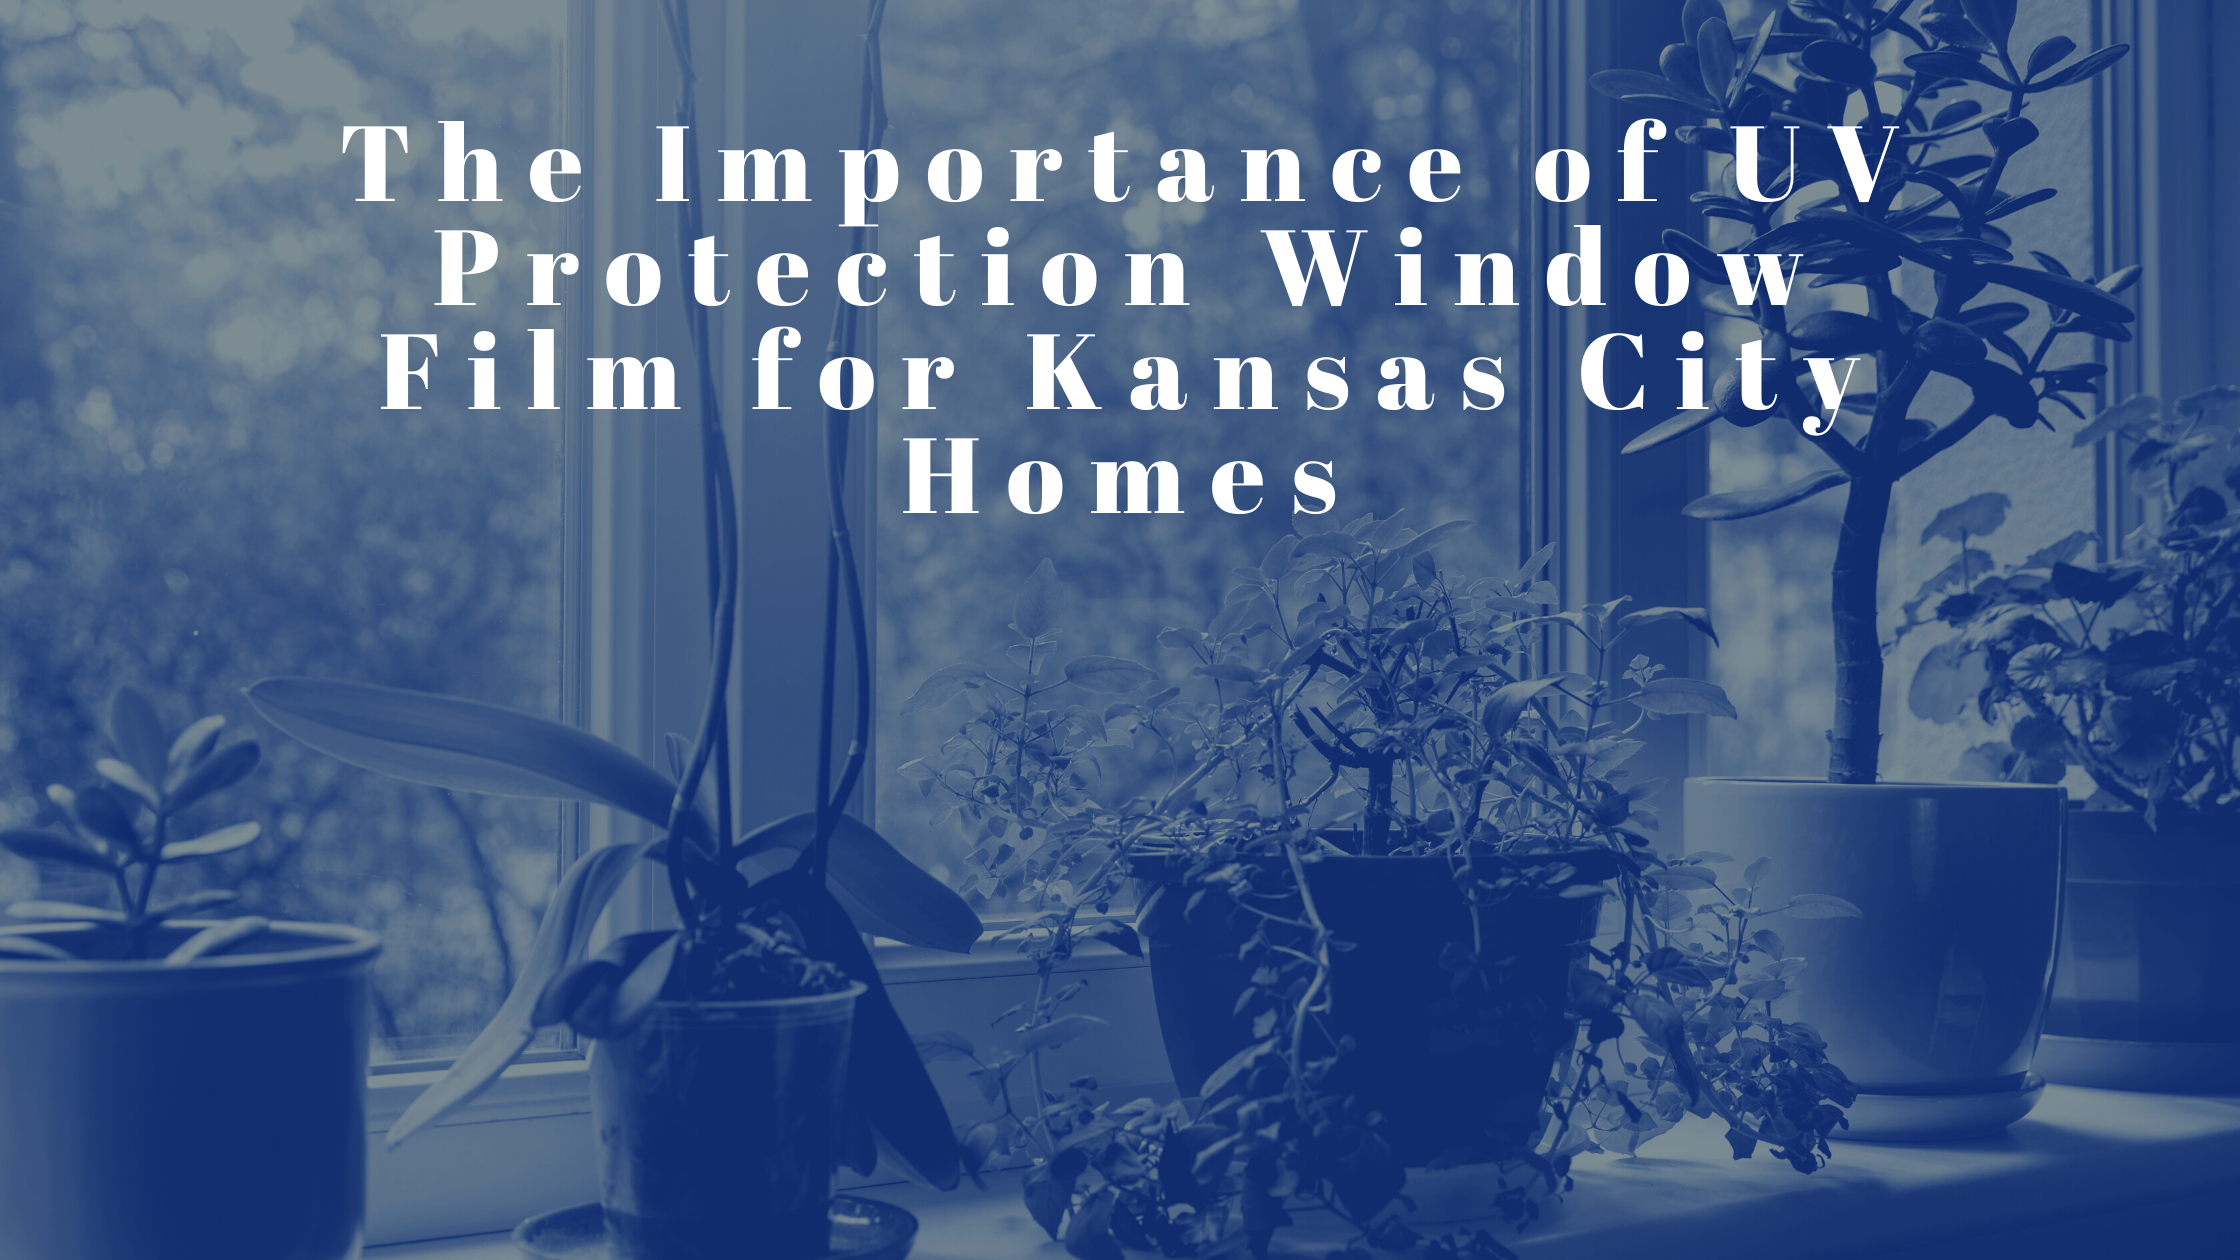 The Importance of UV Protection Window Film for Kansas City Homes